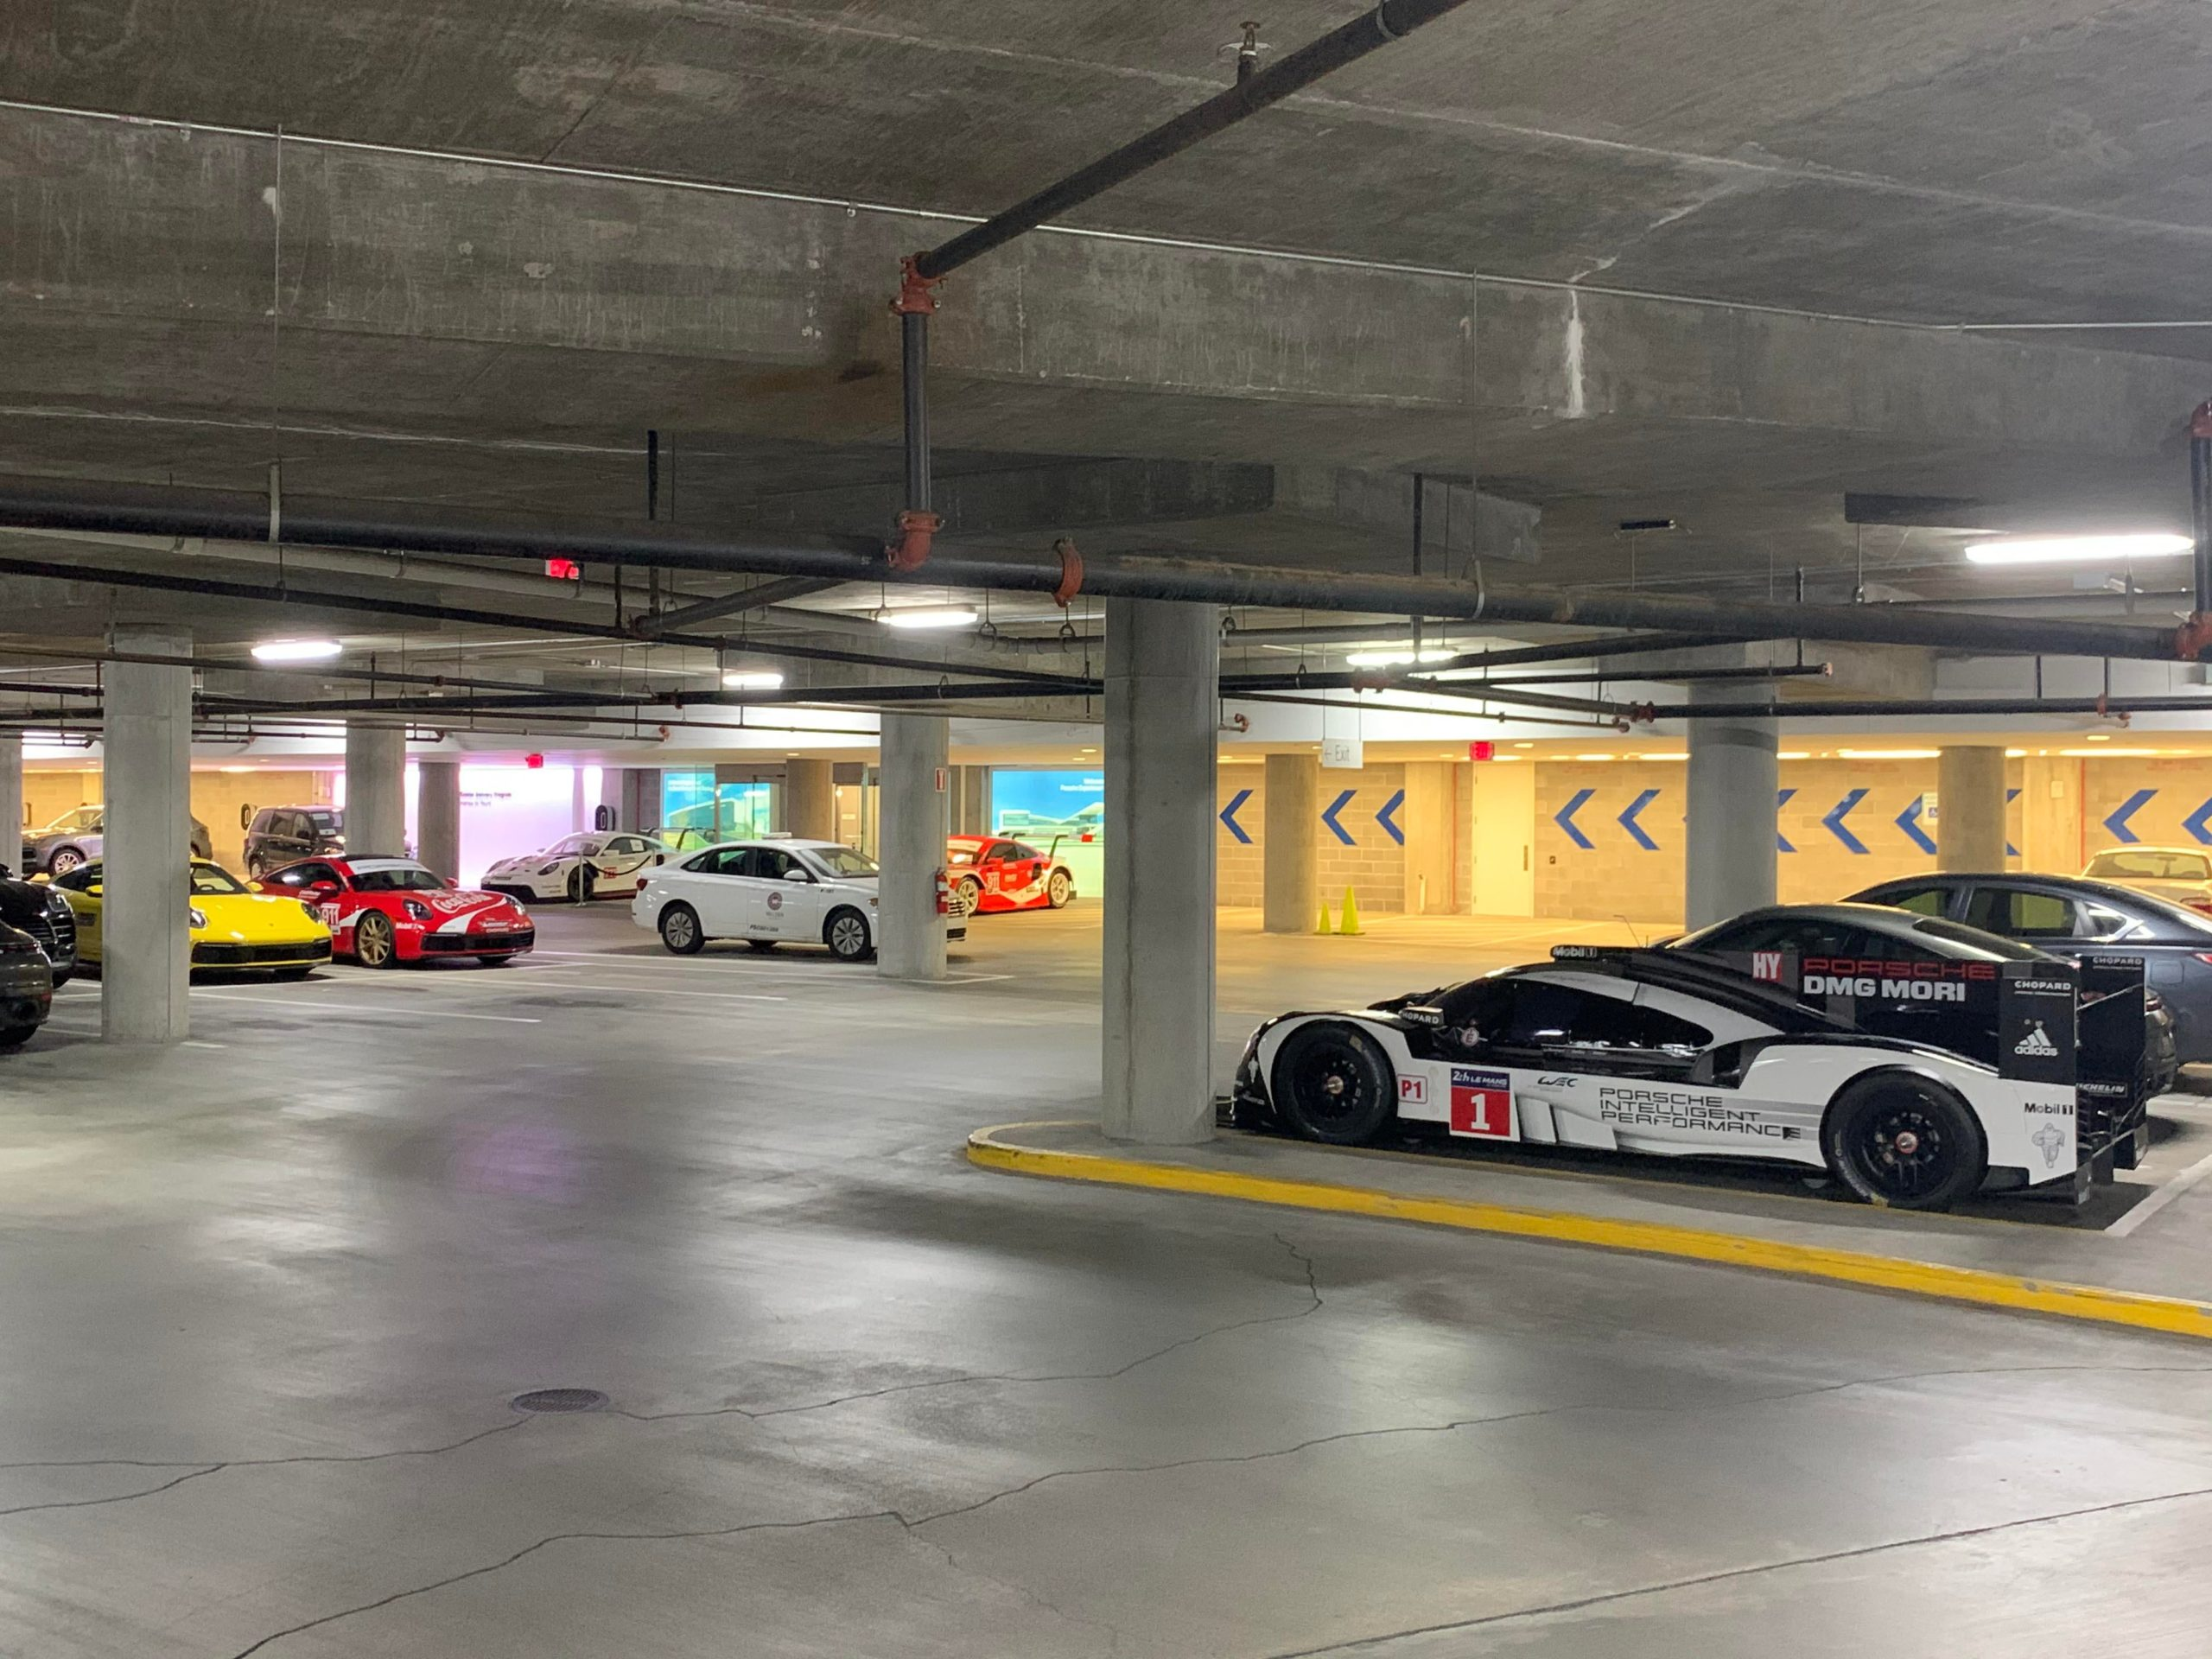 A parking lot where the most interesting thing is not a couple of brand new 992 or the RSRs on the back but a Porsche 919 Hybrid…